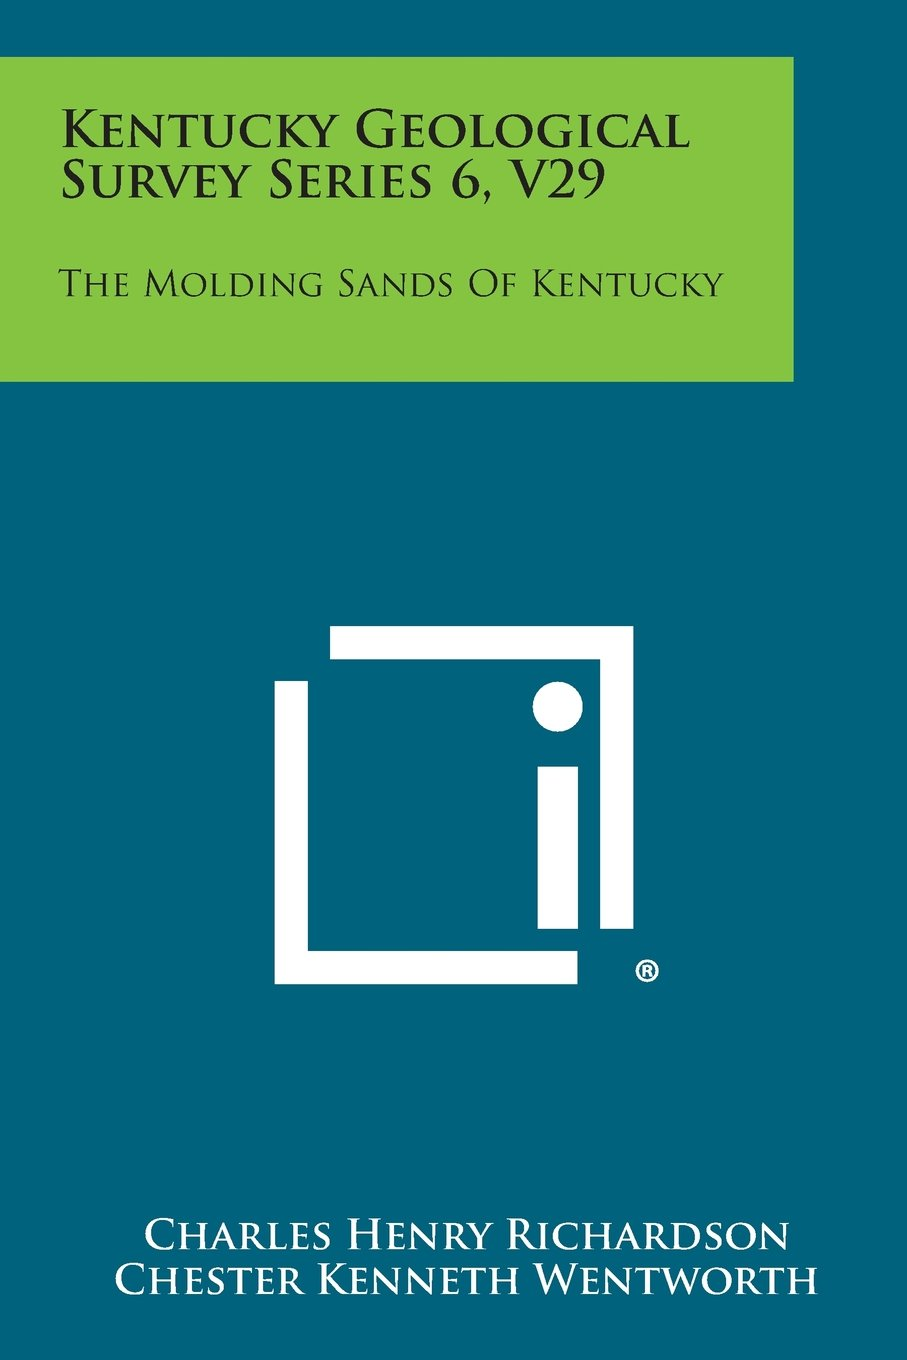 Download Kentucky Geological Survey Series 6, V29: The Molding Sands of Kentucky pdf epub